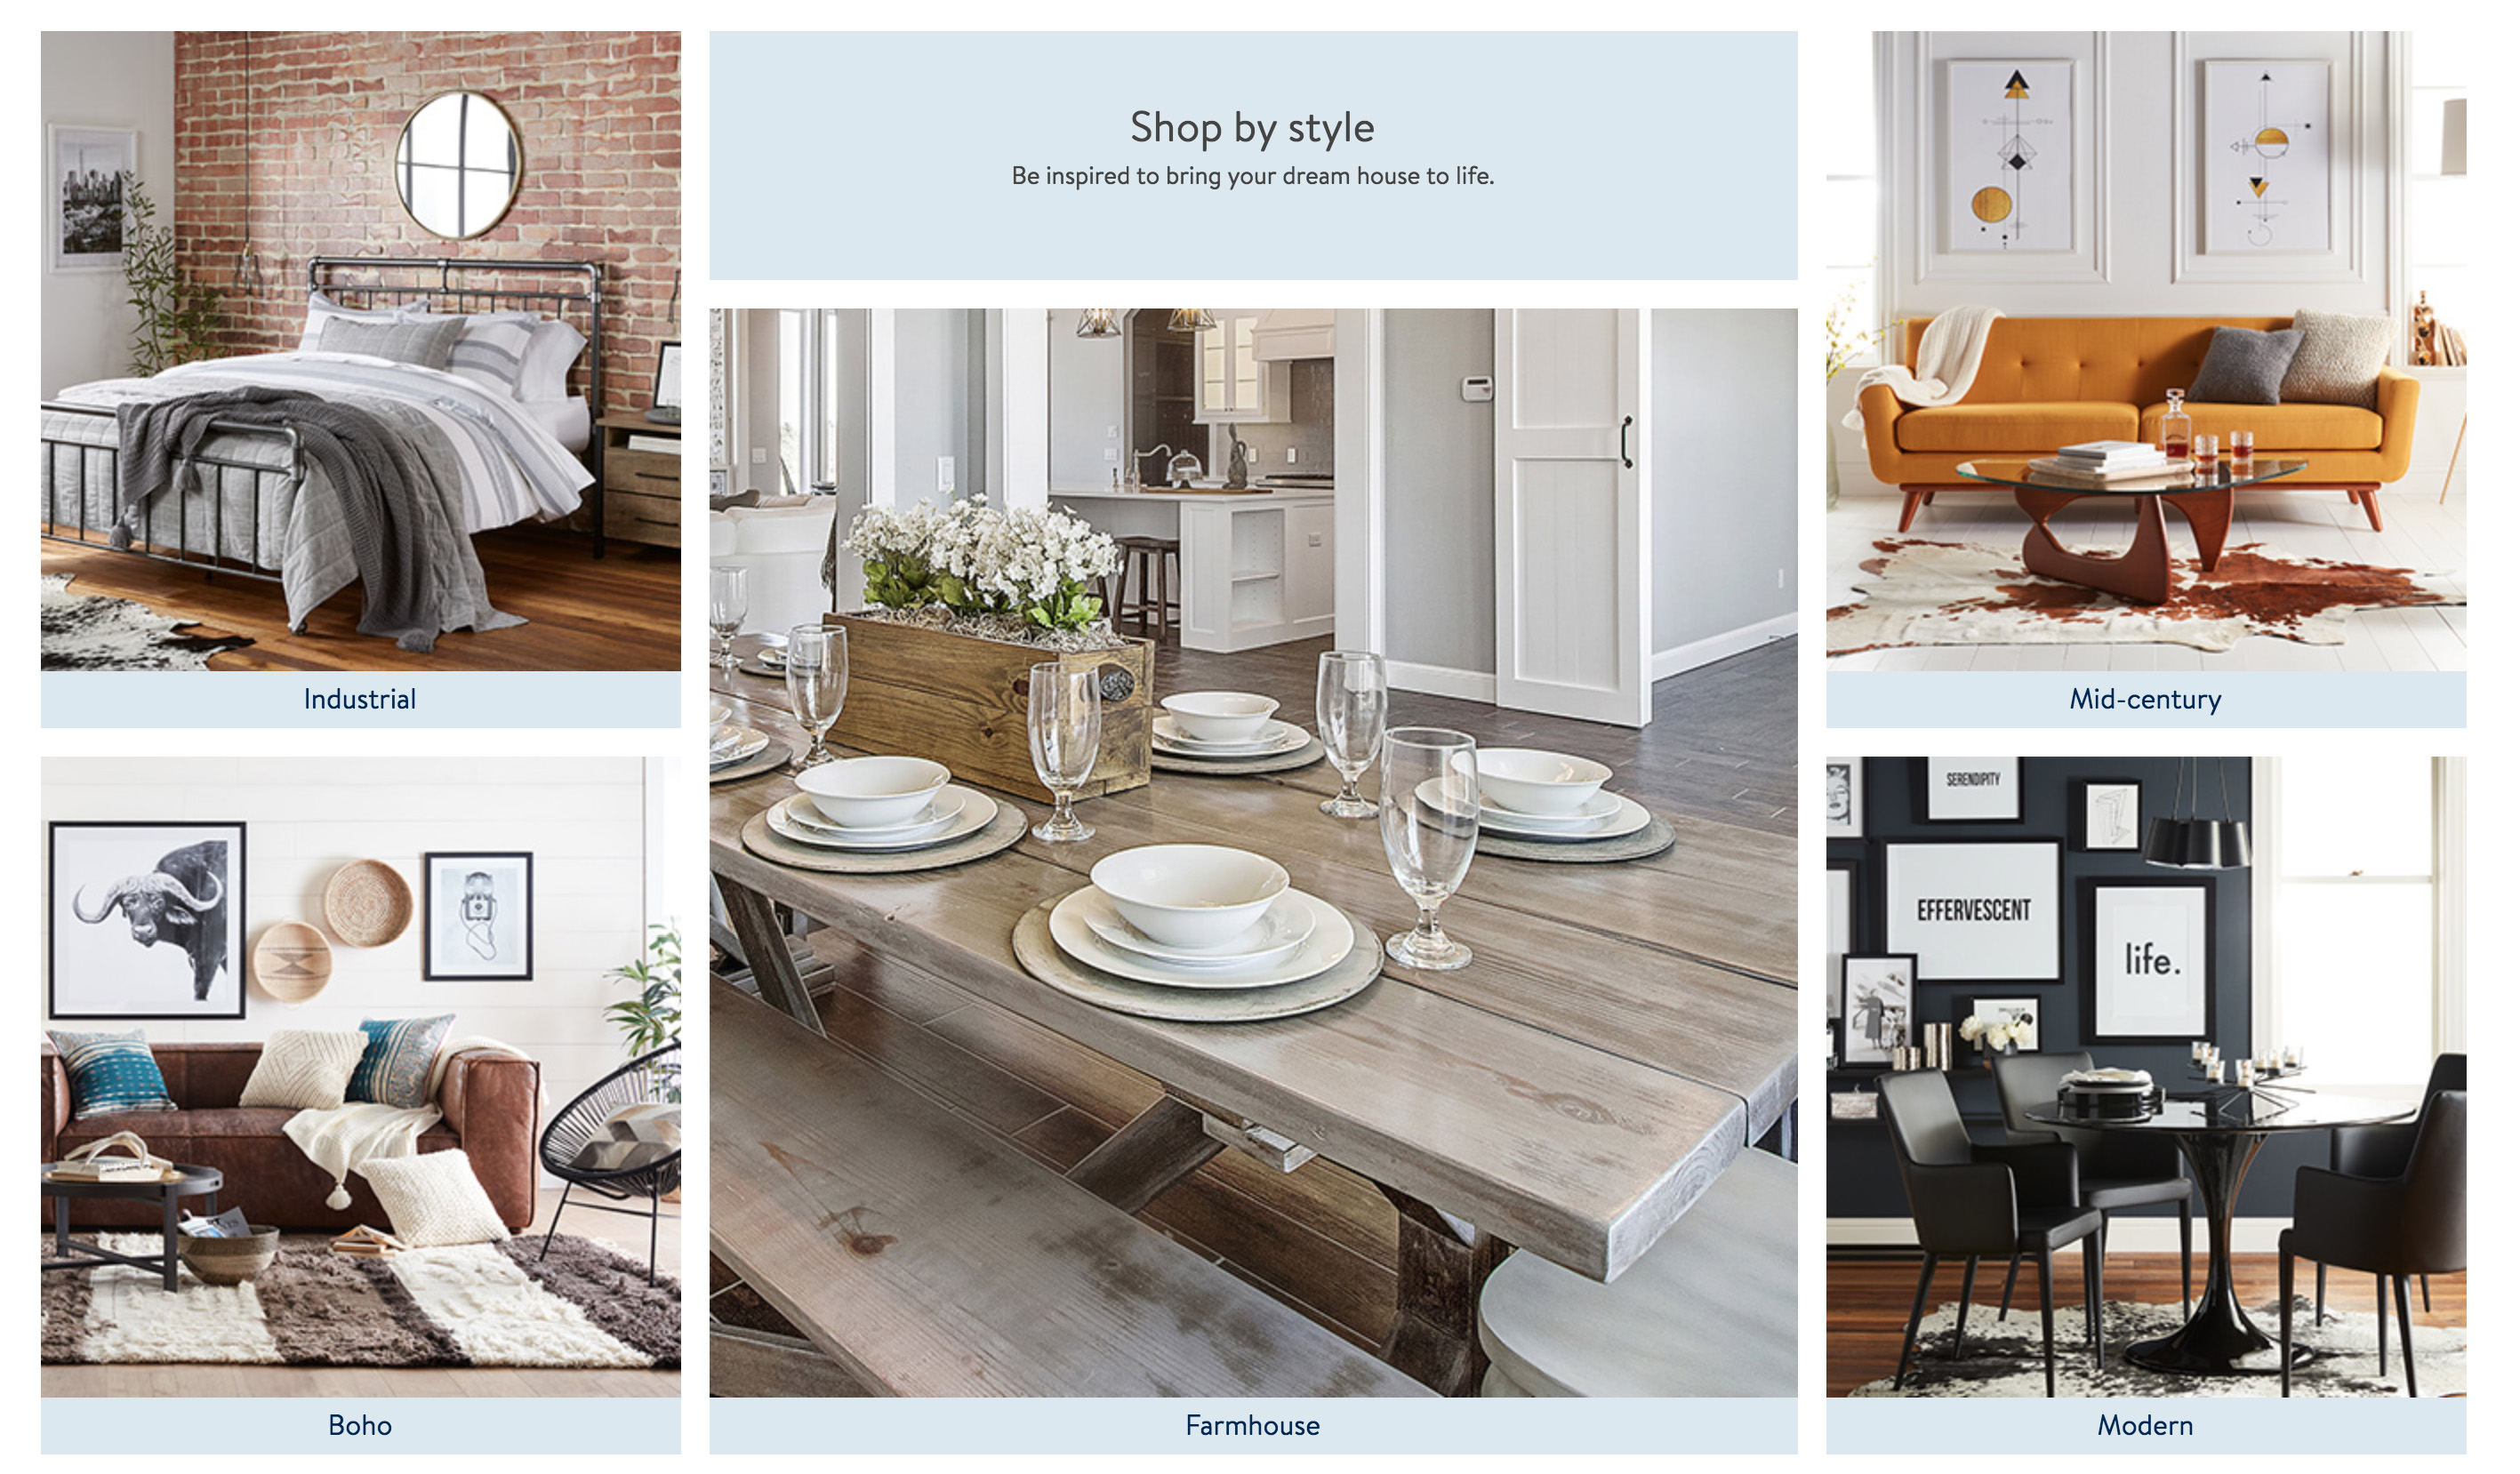 Walmart launches a new home shopping site for furniture and home     Unlike Walmart s typical shopping experience  it will also use  editorial style imagery and will include design tips written by in house  staff